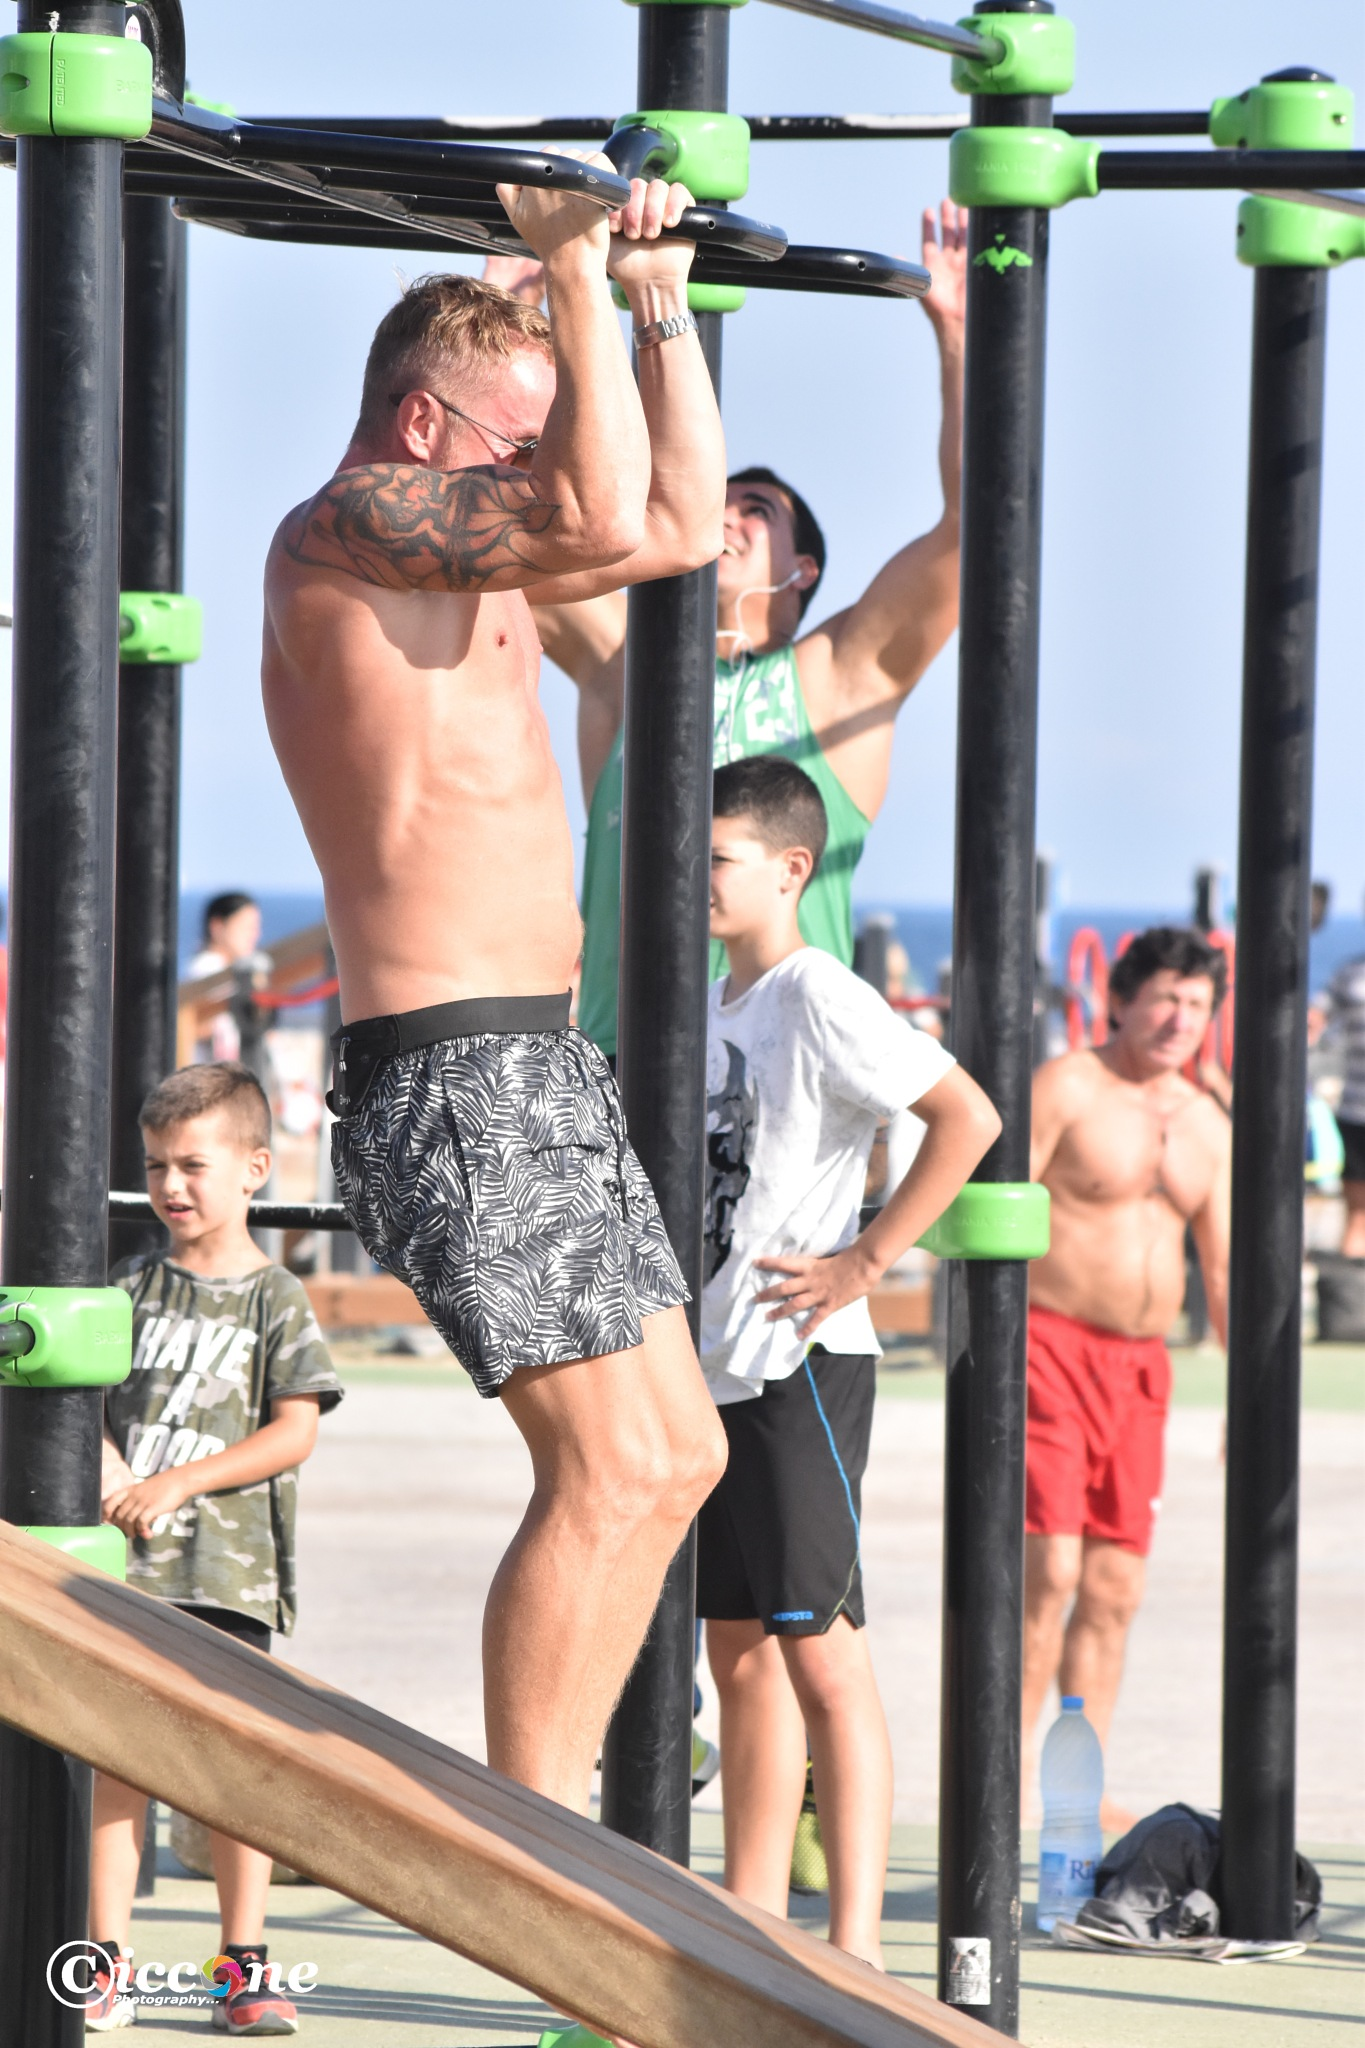 Muscle Beach in Barcelona  by Marc Ciccone